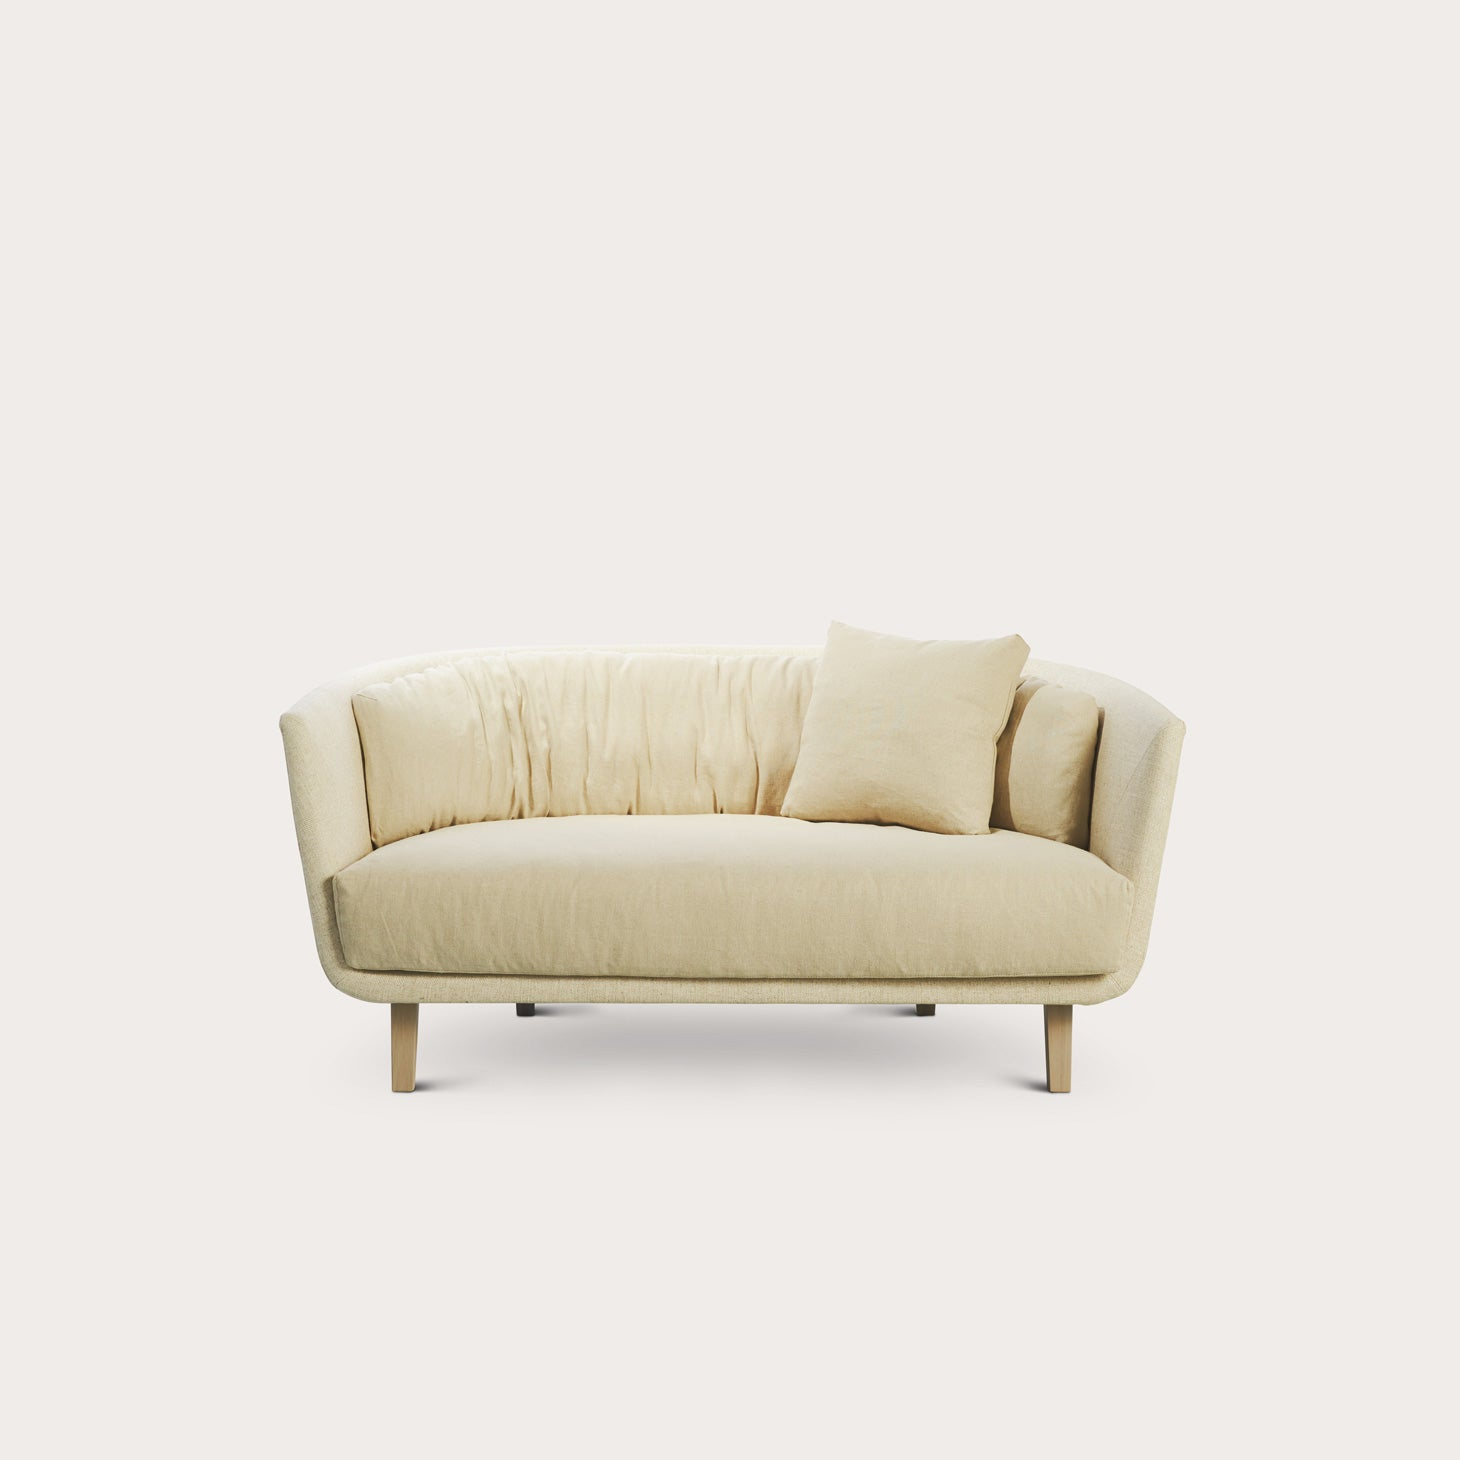 Olaf Sofa Seating Piet Boon Designer Furniture Sku: 784-240-10055